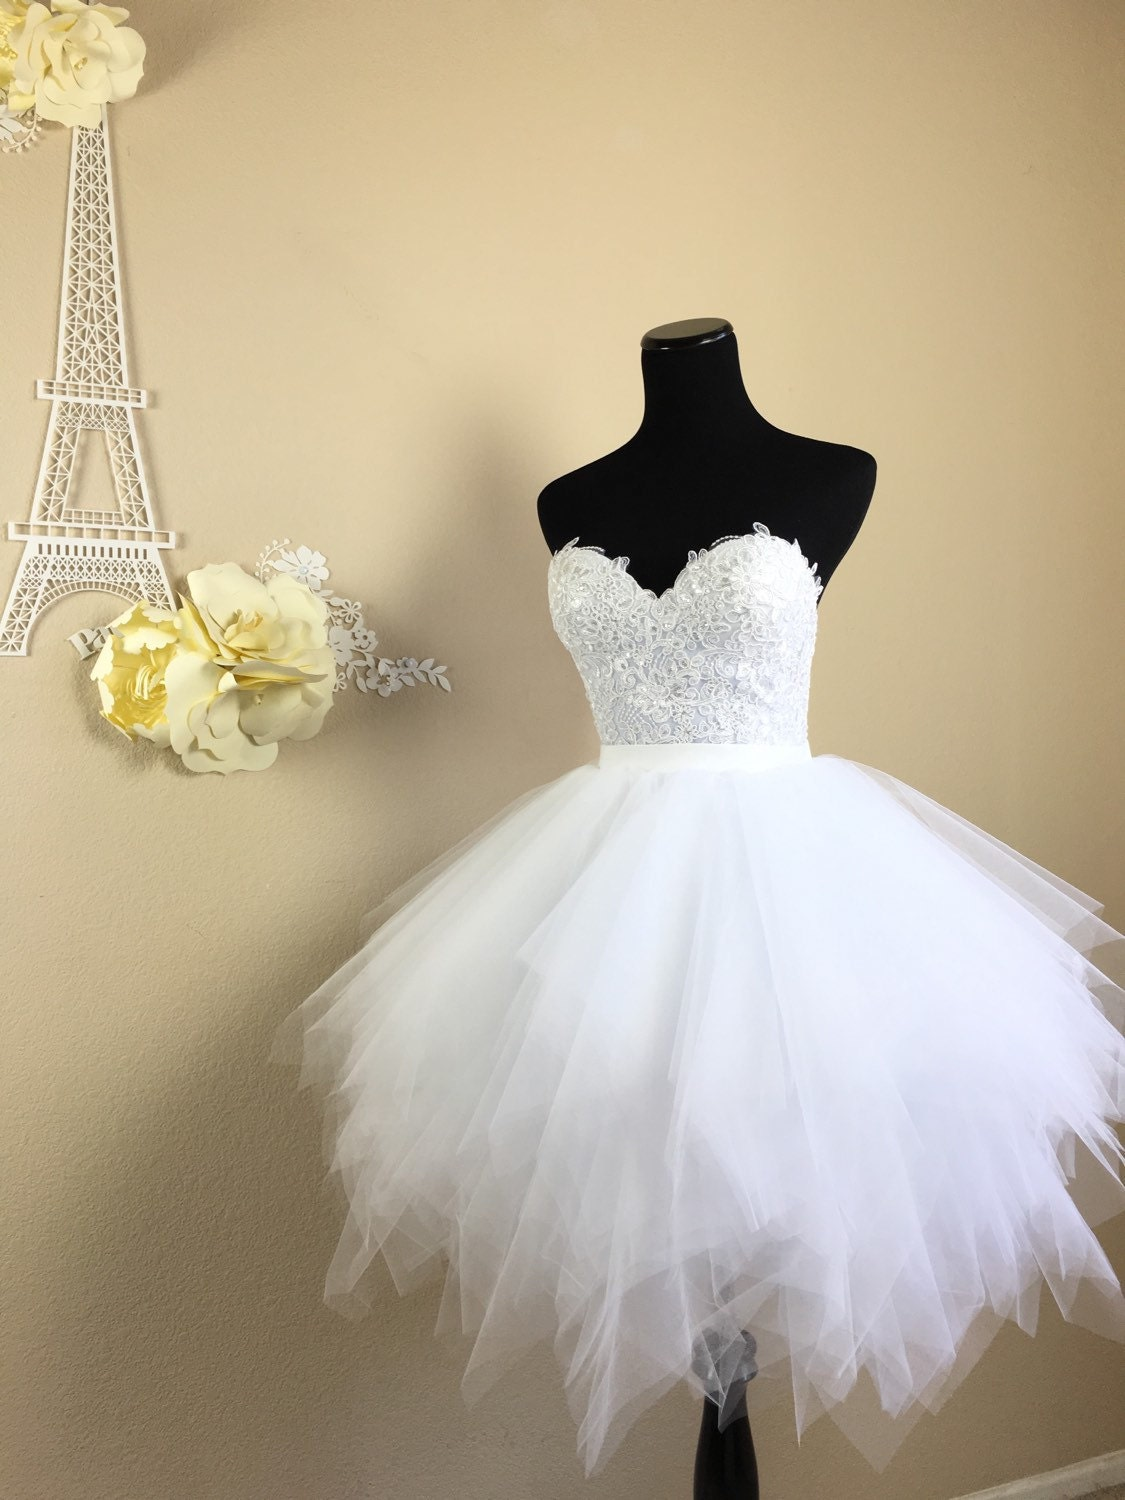 Extra full tulle skirt bridal separates wedding dress tulle for Tulle skirt wedding dresses